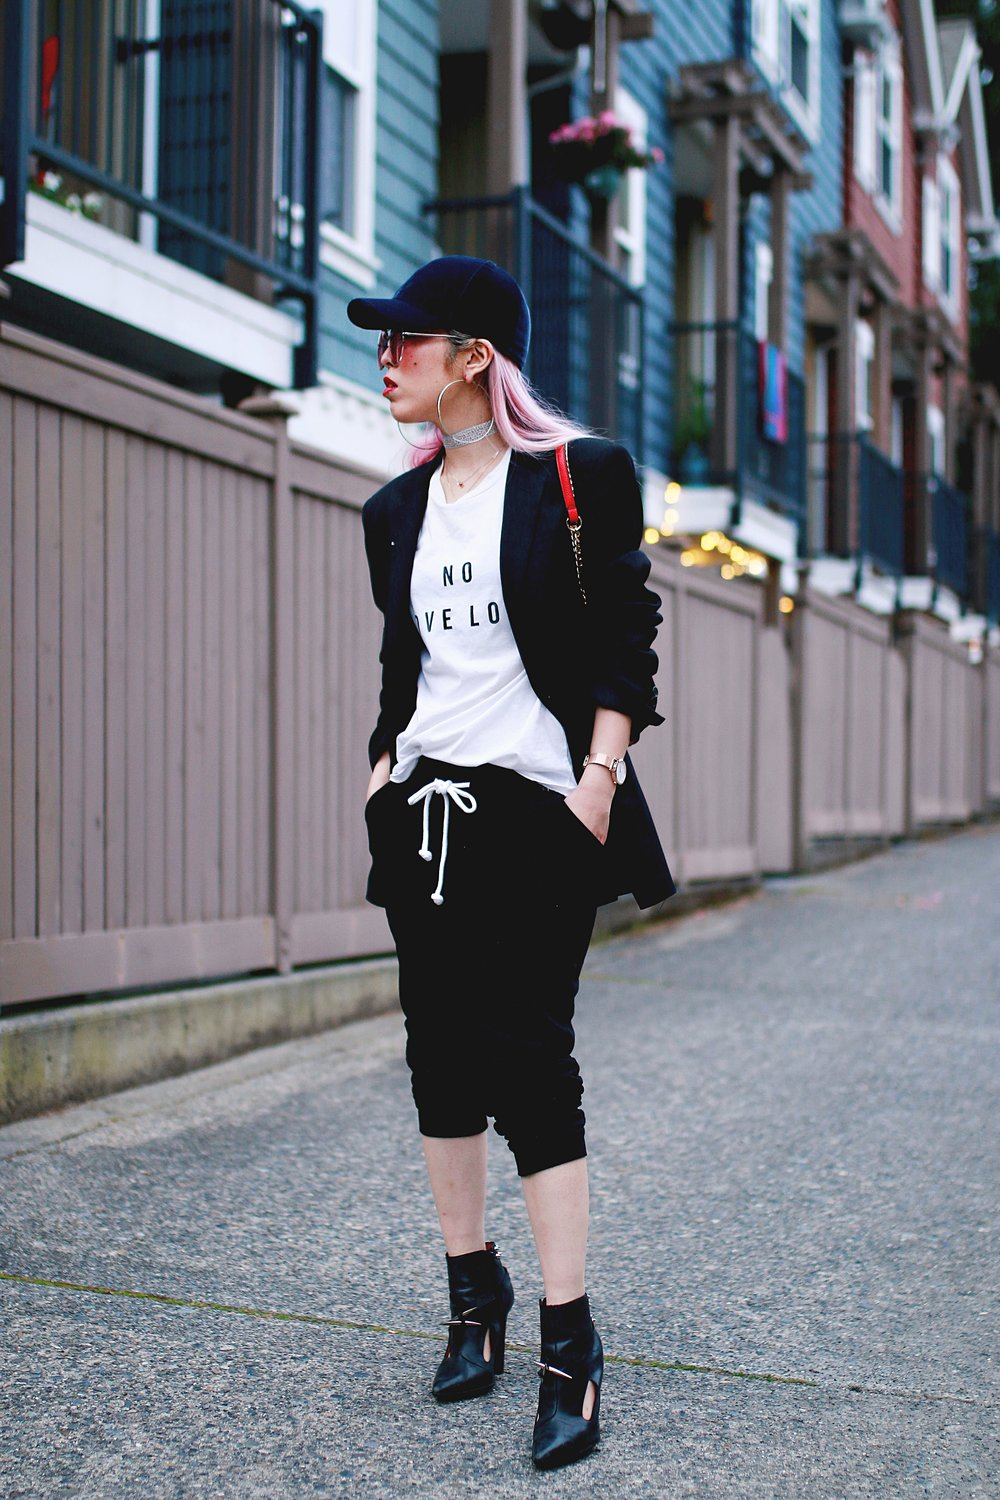 H&M Baseball Cap_Shop Sincerely Jules No LOVE LOST Tee_H&M Sweatpants_YSL Boyfriend Blazer_Zara Choker_Forever 21 Hoop Earrings_Mellow World Red Bag_Jeffrey Campbell Booties_L'Oreal Red Lipstick_Aikas Love Closet_Seattle Fashion Style Blogger_Pink Hair